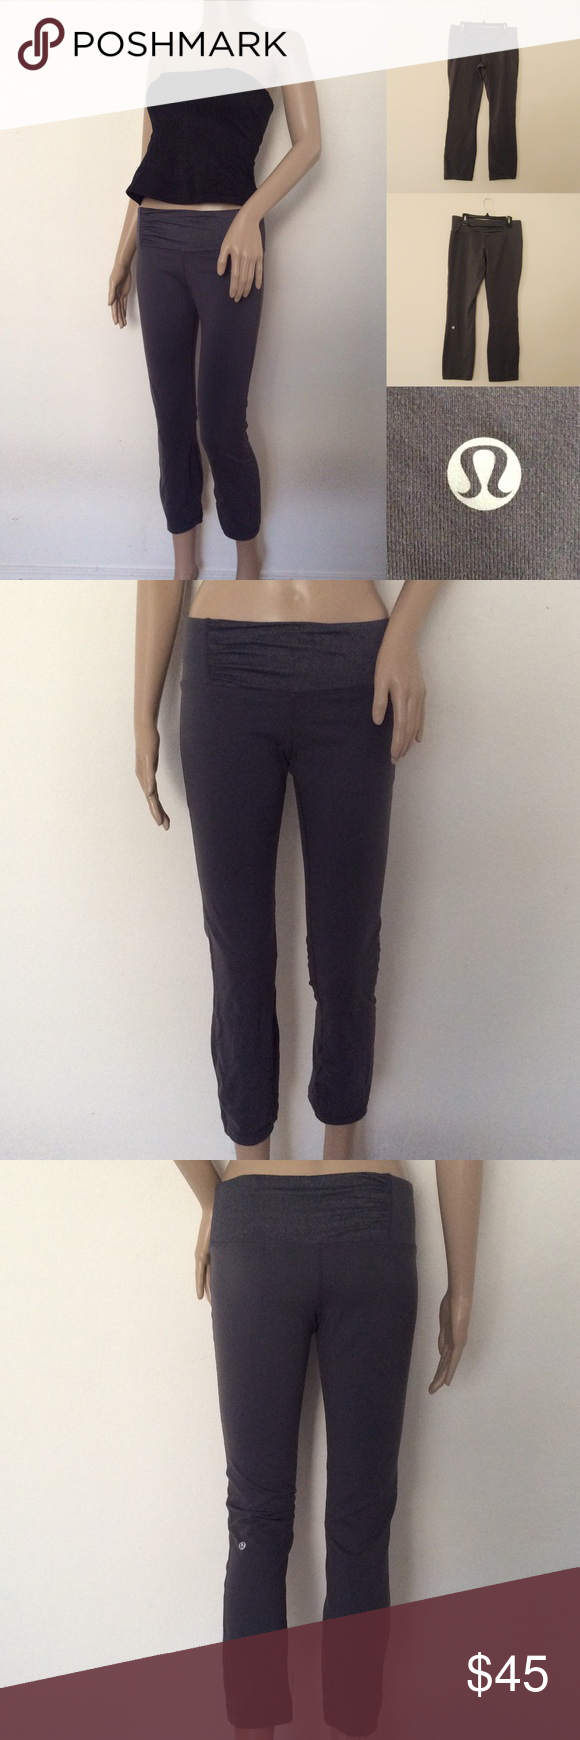 """Rare Lululemon Stance Pant Rare LULULEMON ATHLETICA Heathered Gray Stance Pant. Size 8. Worn 3-4 times. Great condition! Features: Ruching on waistband/Tight, straight leg/medium rise/narrow leg hitting just above the ankle/4-way stretch fabric/gusset crotch/hidden waistband pocket Materials: Luon Actual Measurements (laying flat): • Waist - 29"""" around • Hips - 16"""" • Rise - 10""""  • Length - 33"""" • Inseam - 36"""" • Leg Opening - 6"""" ~❌SWAP❌TRADE ~ ✔️❤️Bundles📦💕 ~✔️Smoke-free/pet-free home…"""